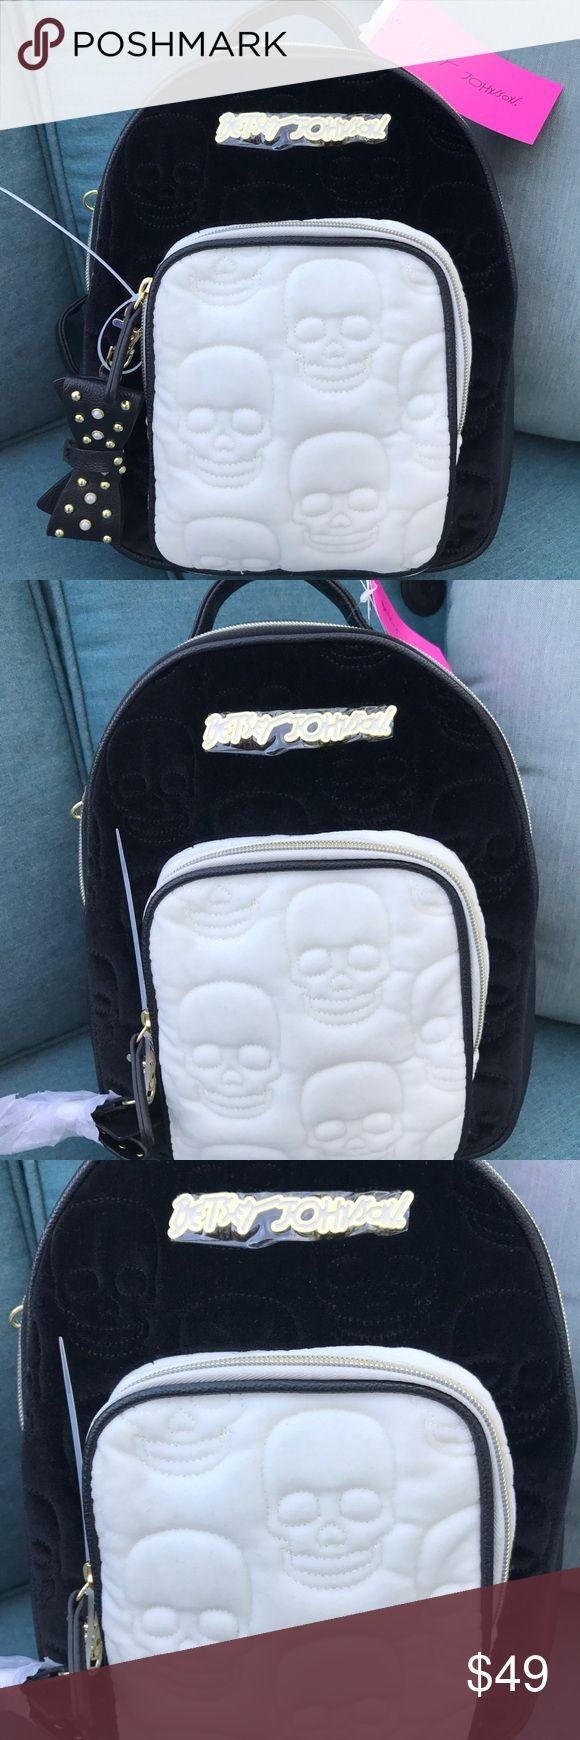 NWT Betsey Johnson Skull Velvety Black Backpack Adorable Betsey Johnson new Black and cream backpack with black stud bow detail. Adjustable back straps, front pocket, large zipper pocket with grey rosebud lining and zip and slip pockets. BNWT and in perfect shape. Retails for $88. Betsey Johnson Bags Backpacks